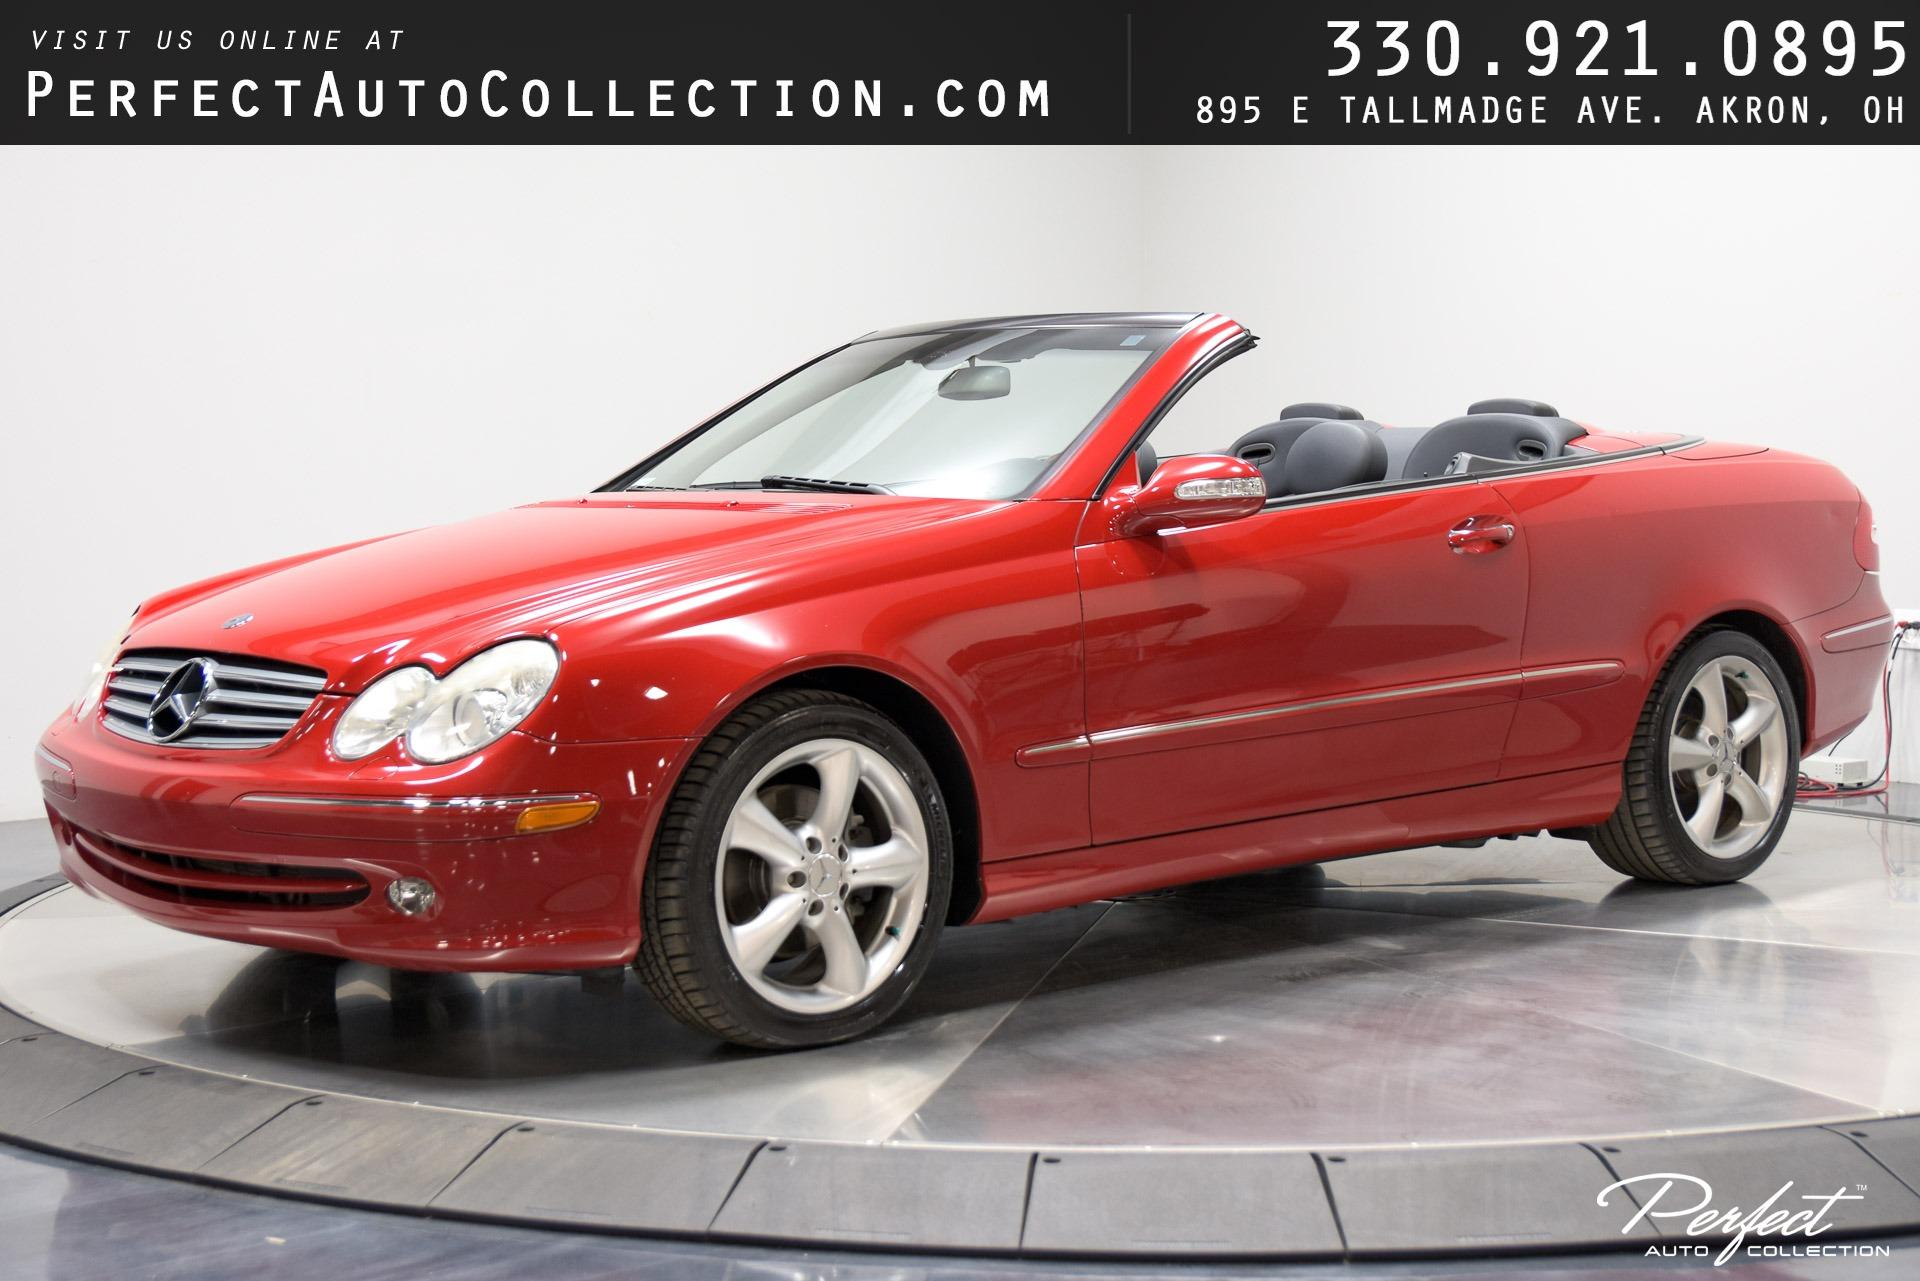 Used 2005 Mercedes-Benz CLK CLK 320 for sale $11,955 at Perfect Auto Collection in Akron OH 44310 1